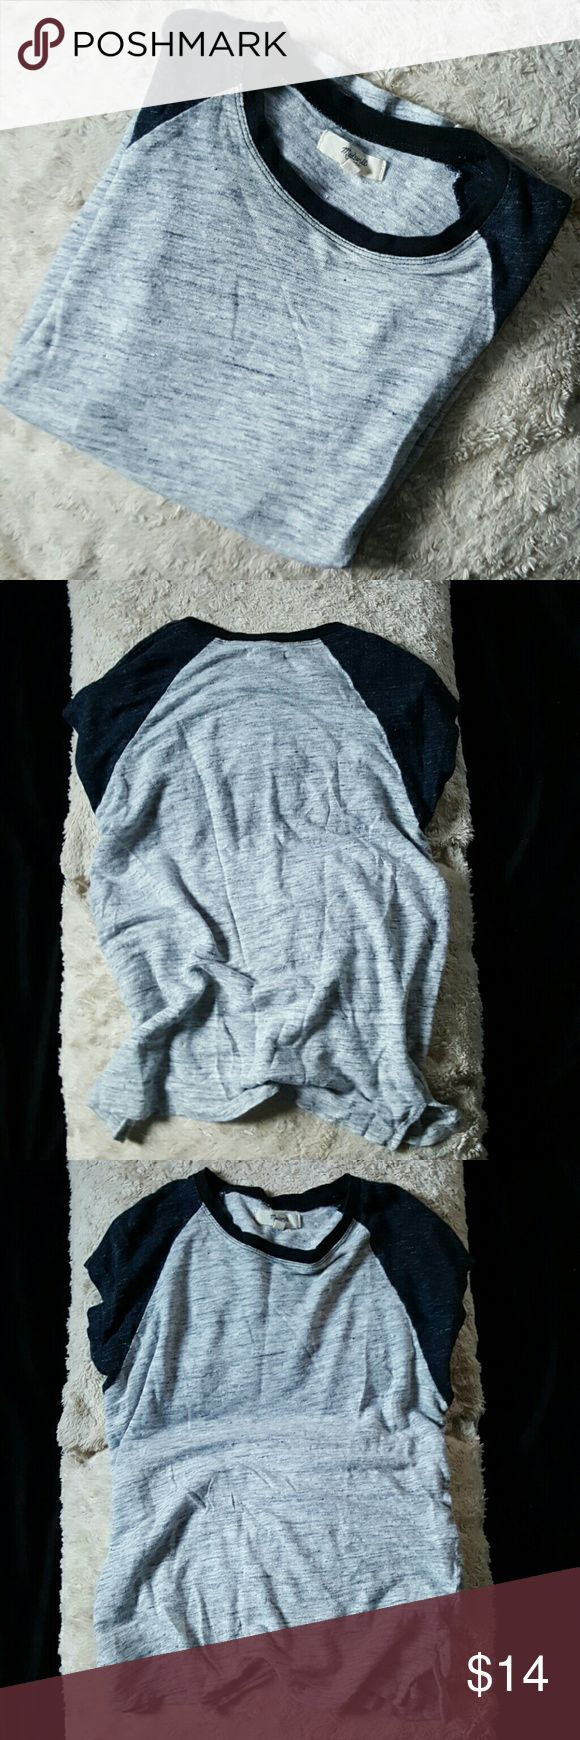 Madewell tee In great condition. Perfect paired with a Jean jacket and leggings.. Madewell Tops Tees - Short Sleeve